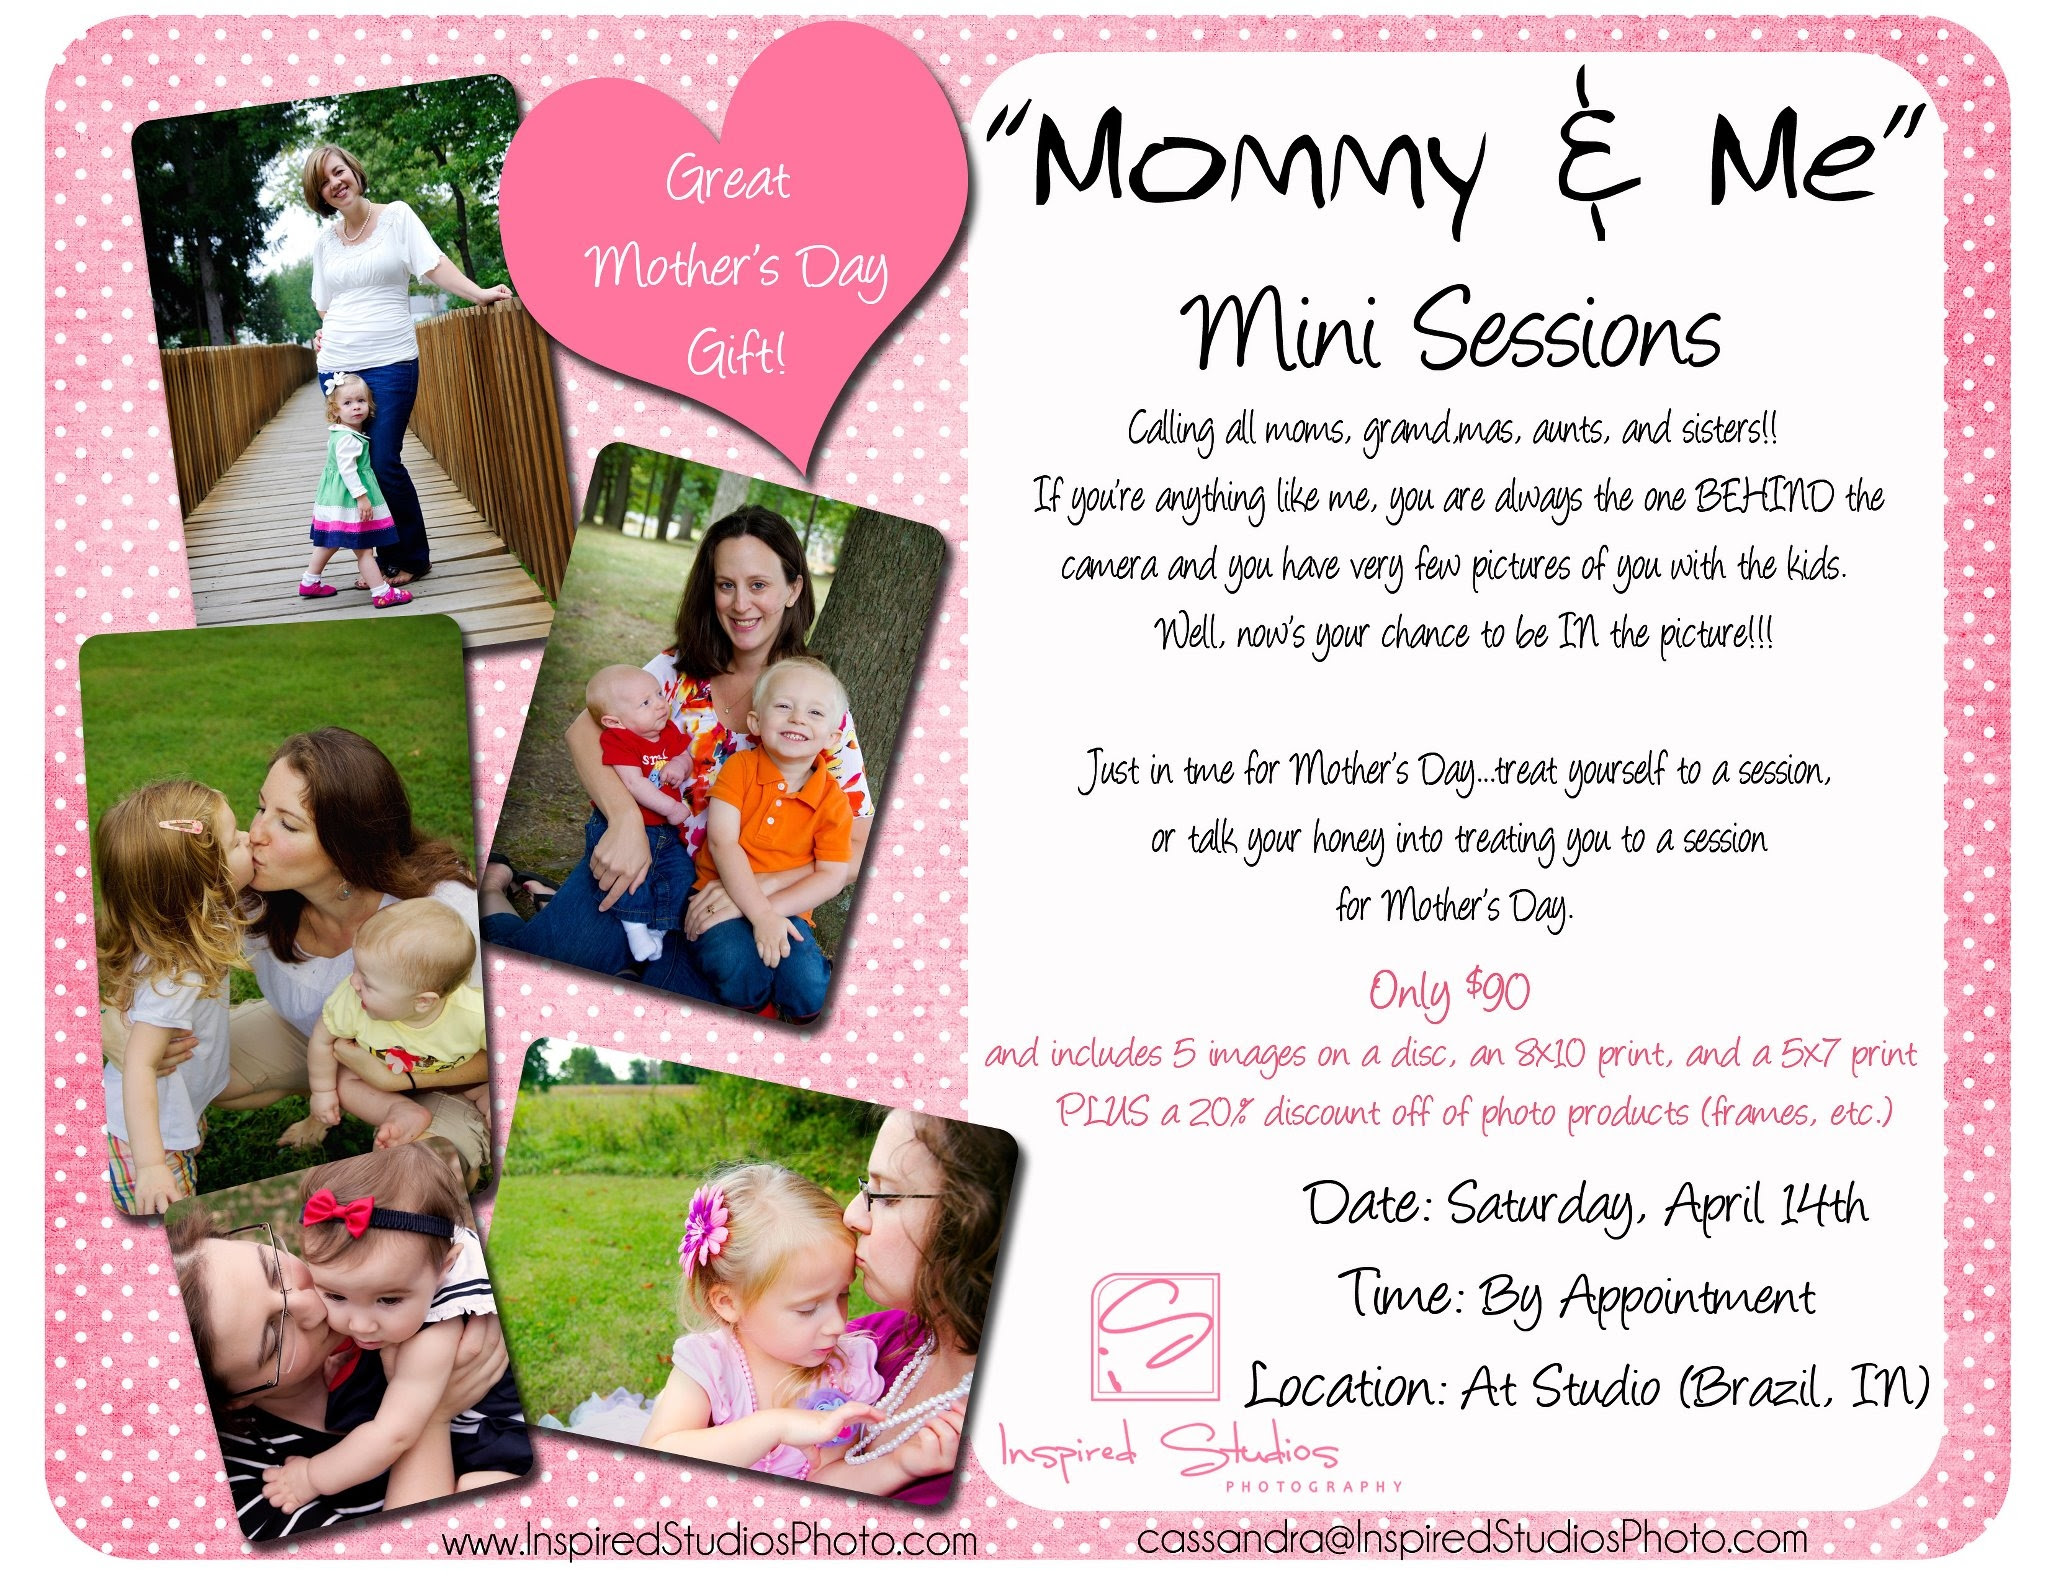 Mommy Me Mini Sessions Inspired Studios Blog